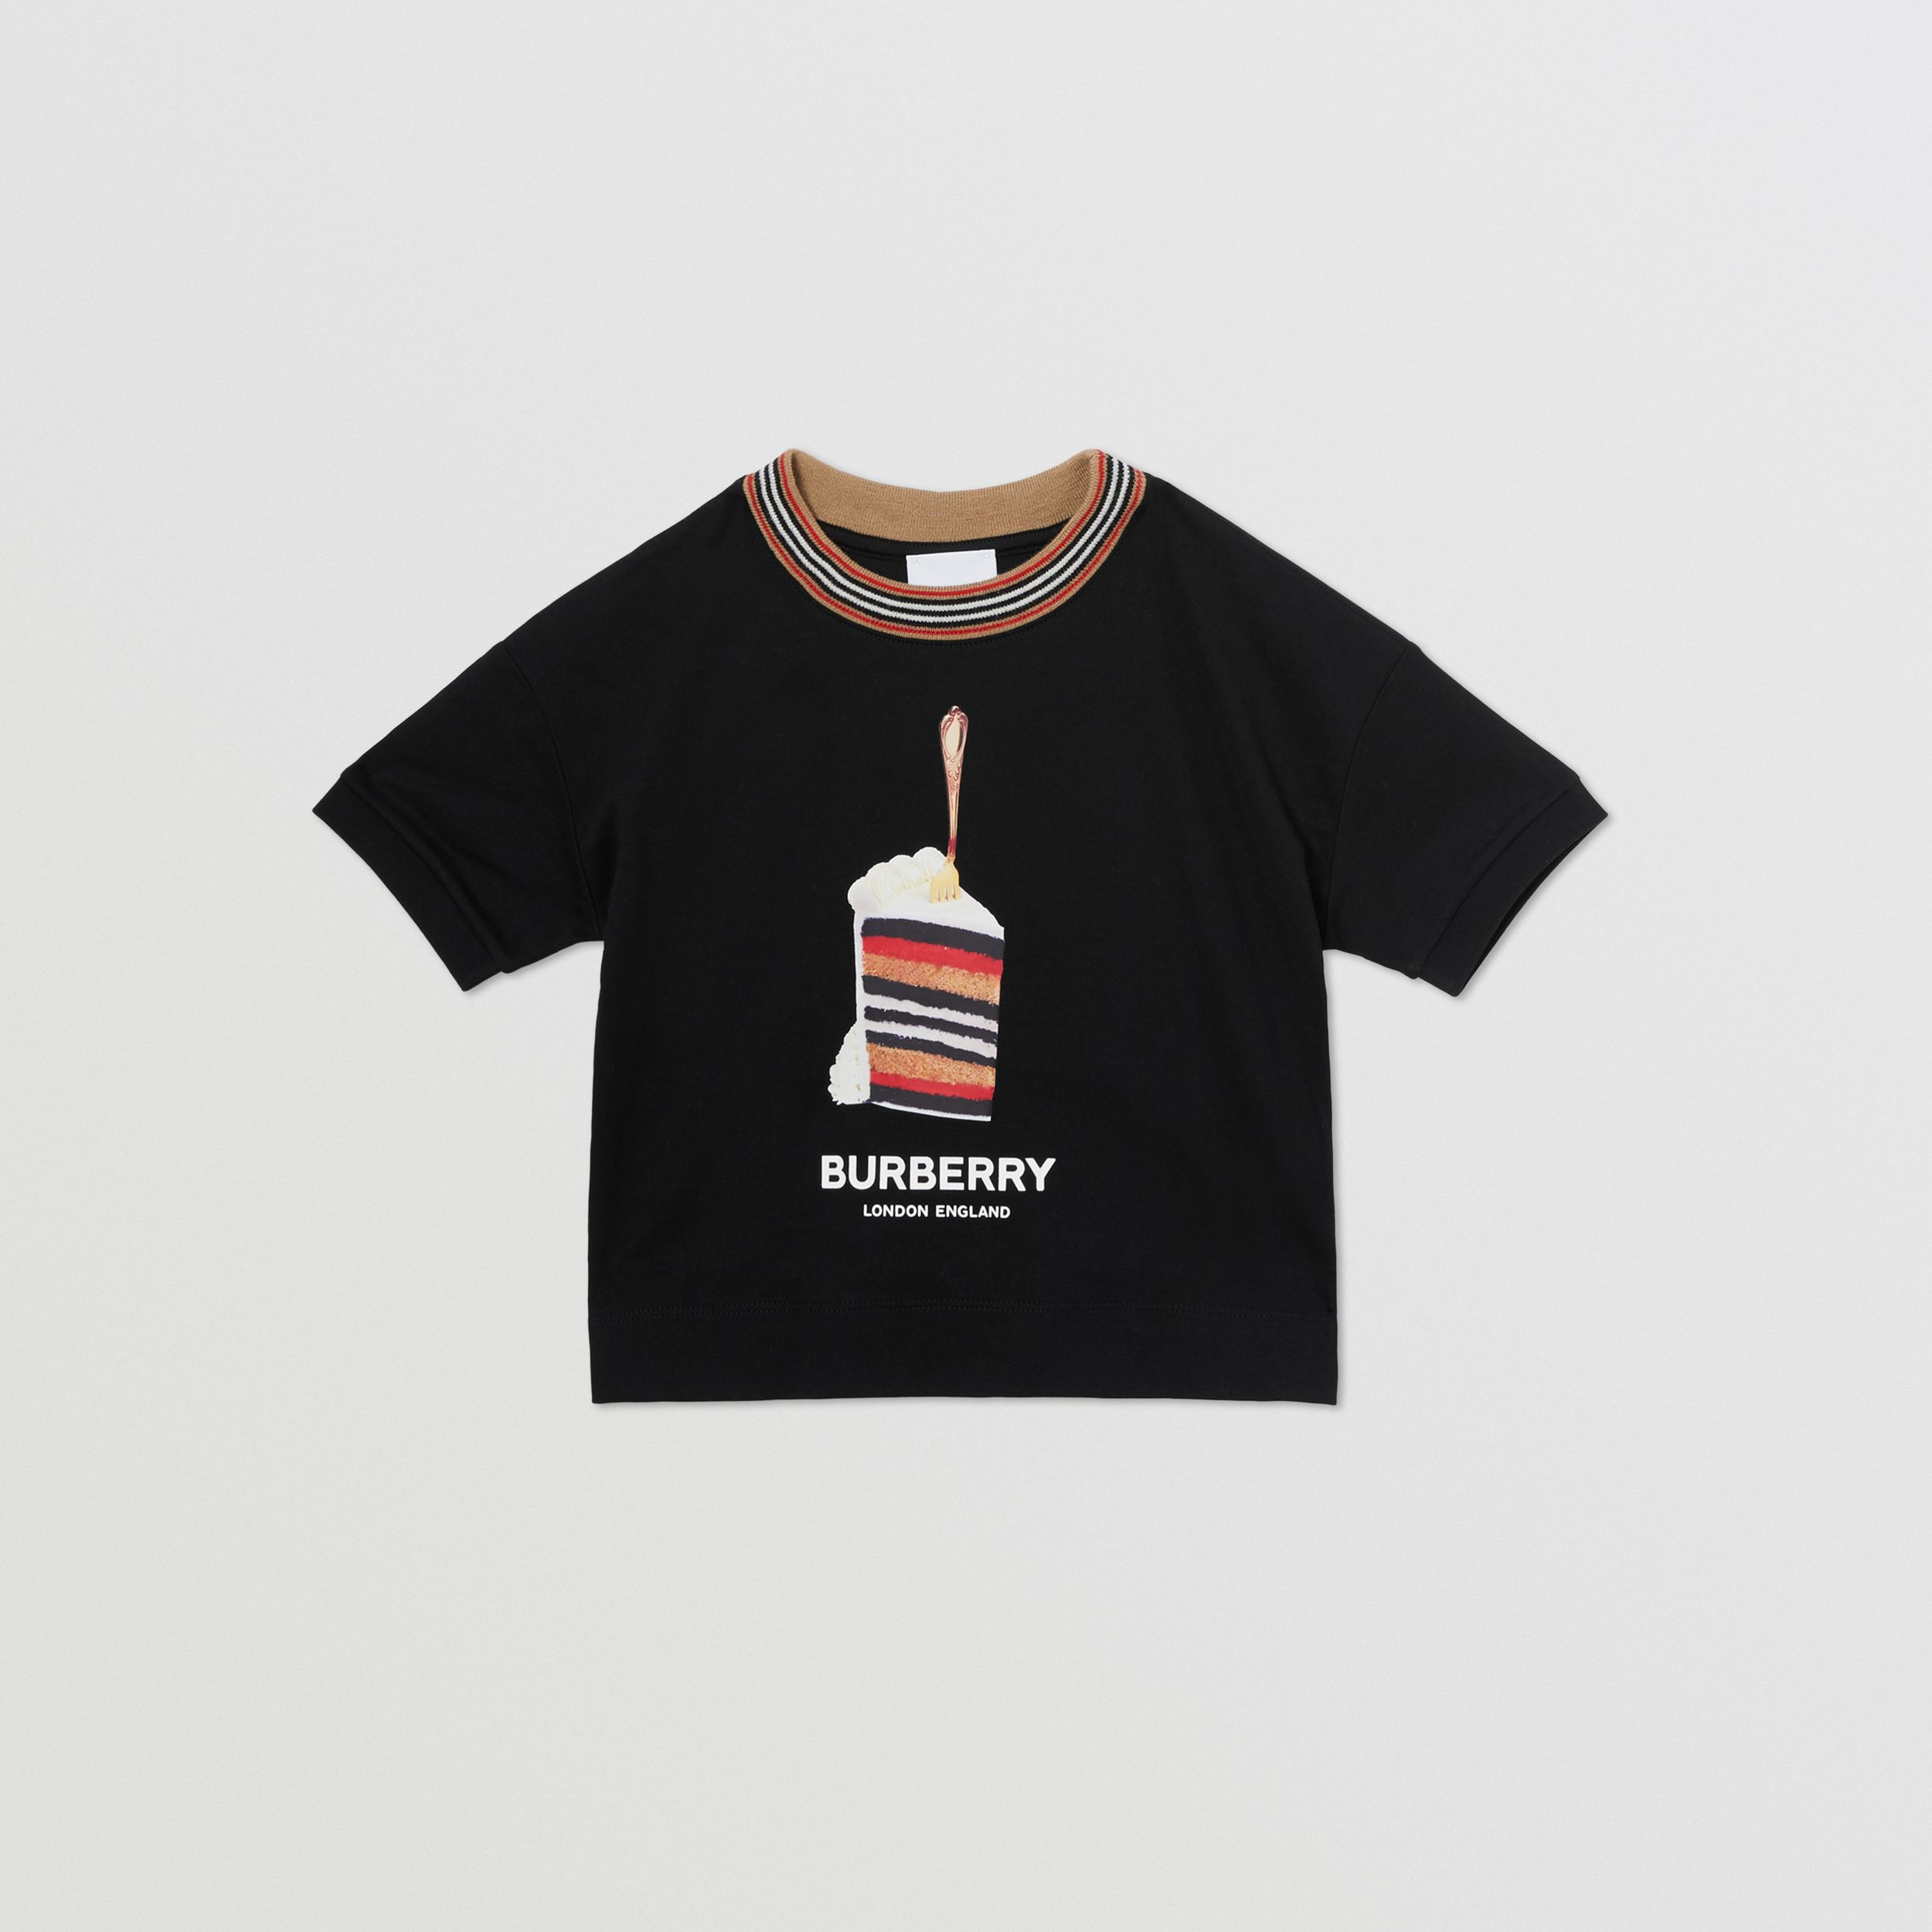 Cake Print Cotton T-shirt in Black | Burberry - 1